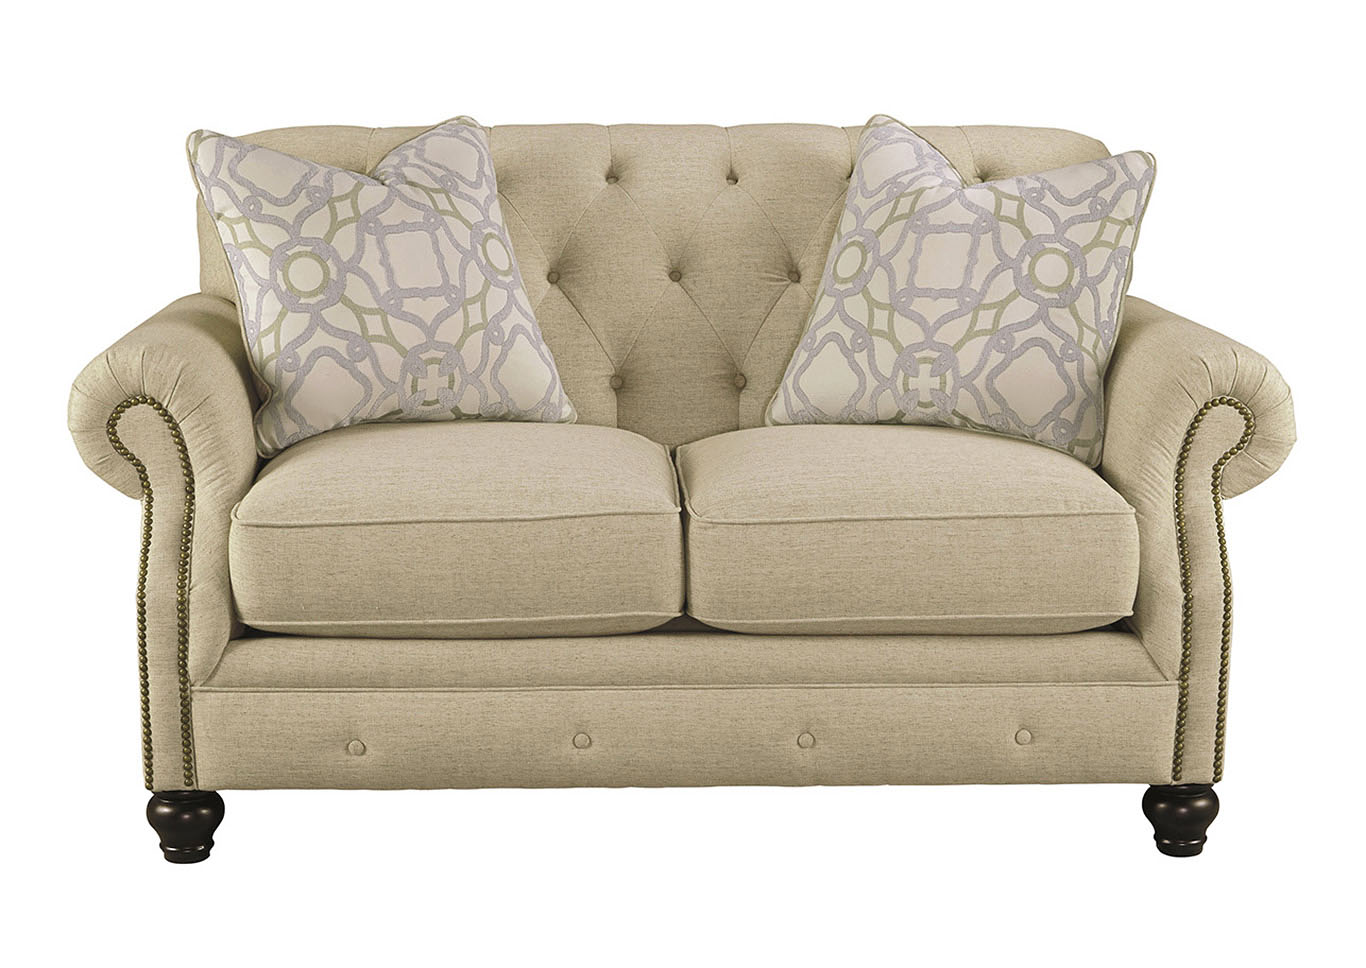 Kieran Natural Loveseat,Signature Design by Ashley